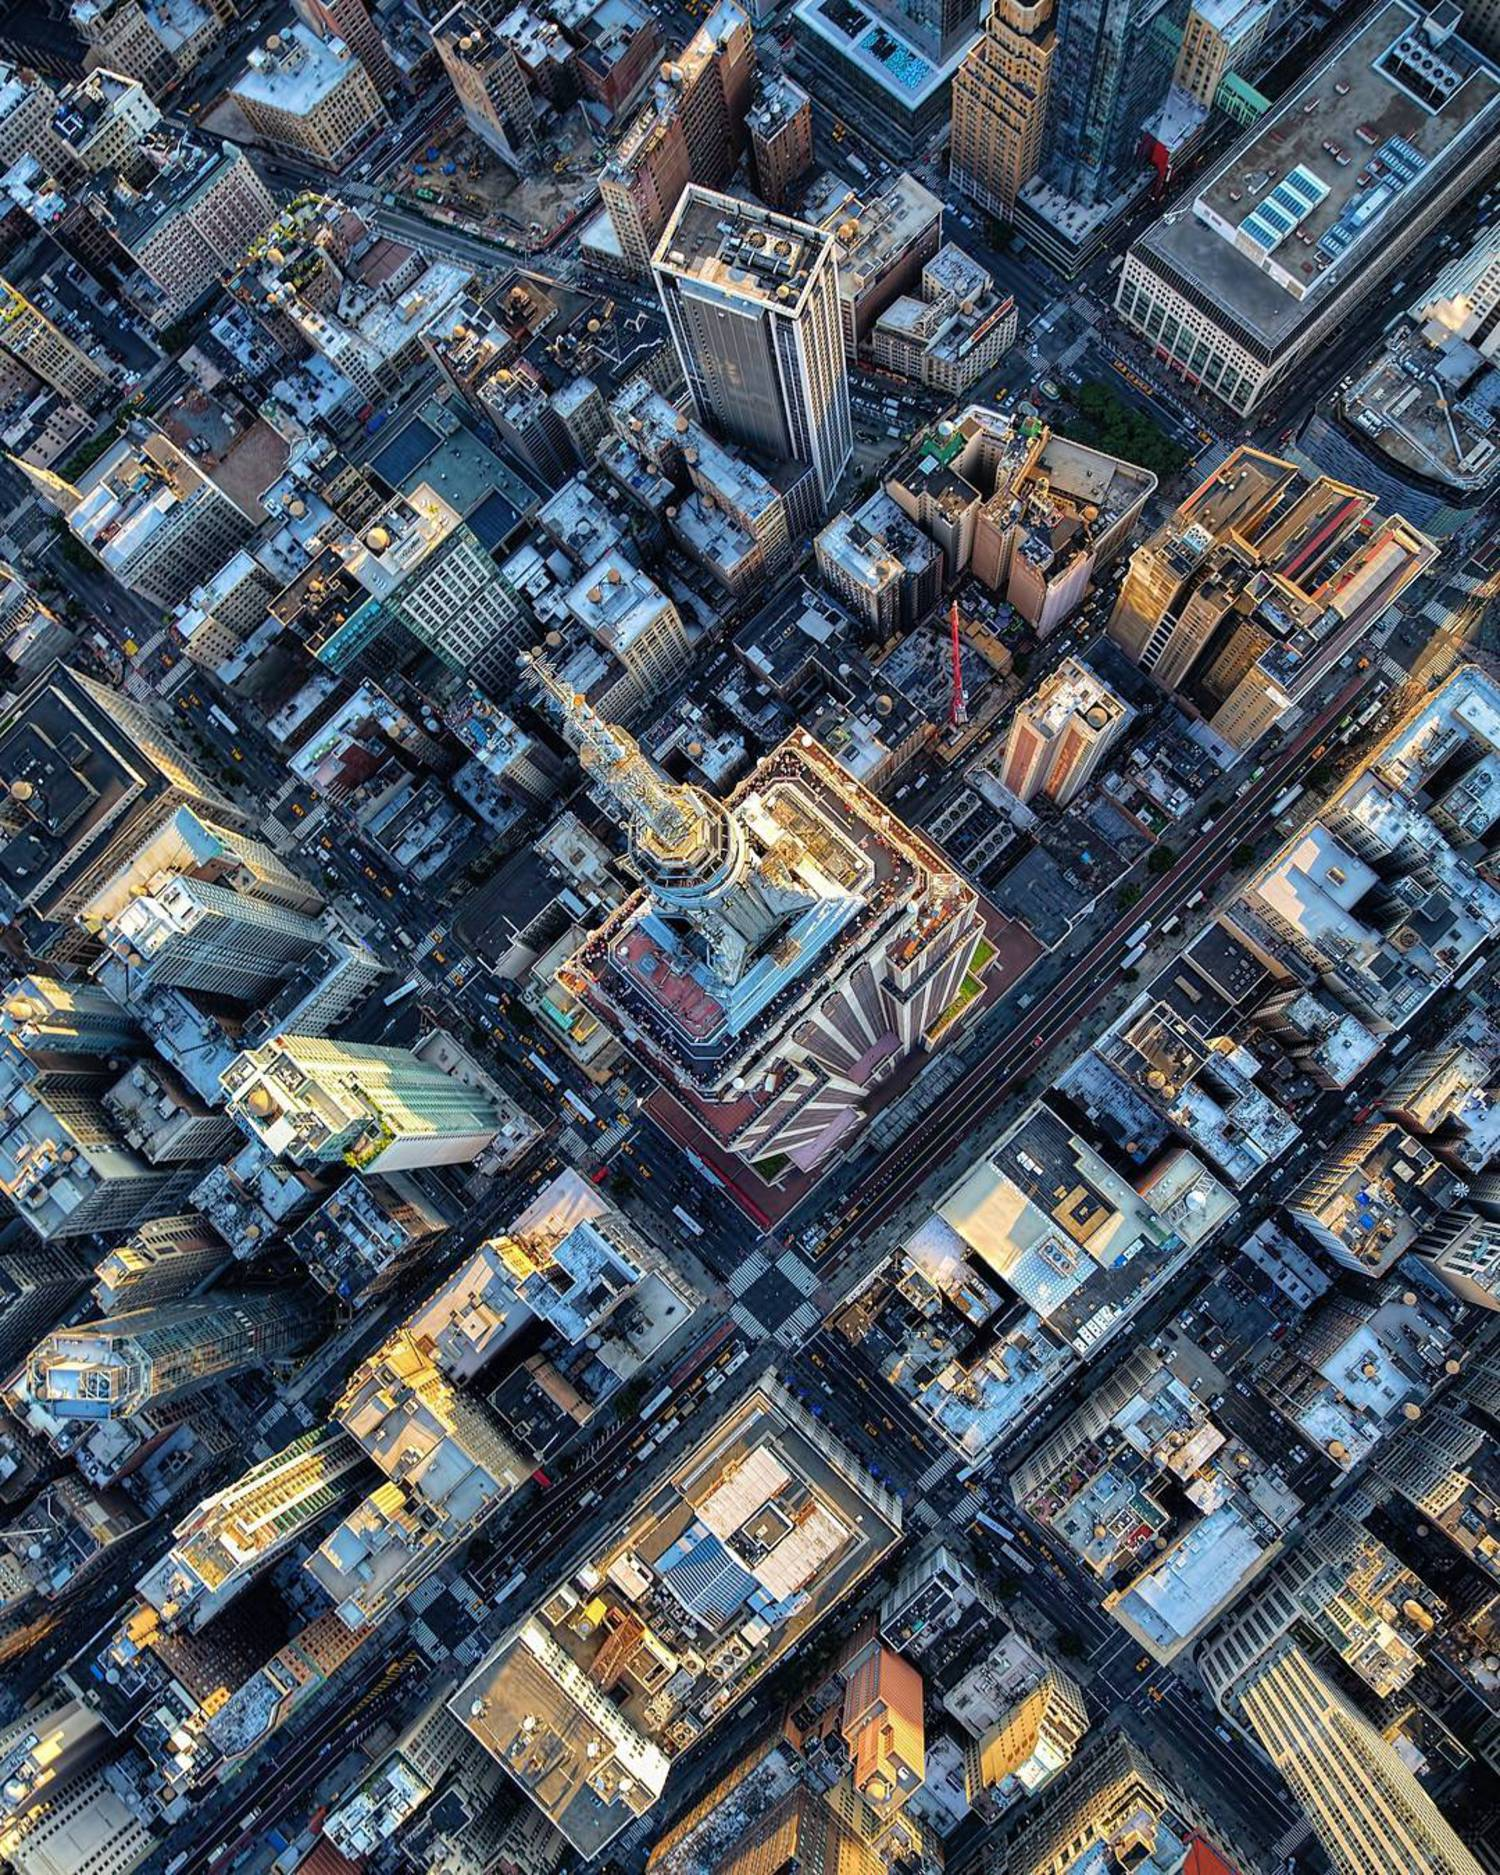 Happy Wednesday everyone! Empire State Building as seen from high above  Thanks for checking out my feed and as usual please check out the talented photographers tagged here as well  #createcommune #nyloveyou #icapture_nyc #fatalframes #way2ill #superhubs #igs_america #artofvisuals #moodygrams #igglobalclub #illgrammers #loves_nyc #wildnewyork #igworldclub #the_visionaries #theimaged #ig_northamerica #photowall #inspiring_photography_admired #usaprimeshot #cbviews #ig_exquisite #newyork_ig #ig_color #feedissoclean #igersofnyc #udog_peopleandplaces #beautifuldestinations #newyorklike #sky_high_architecture